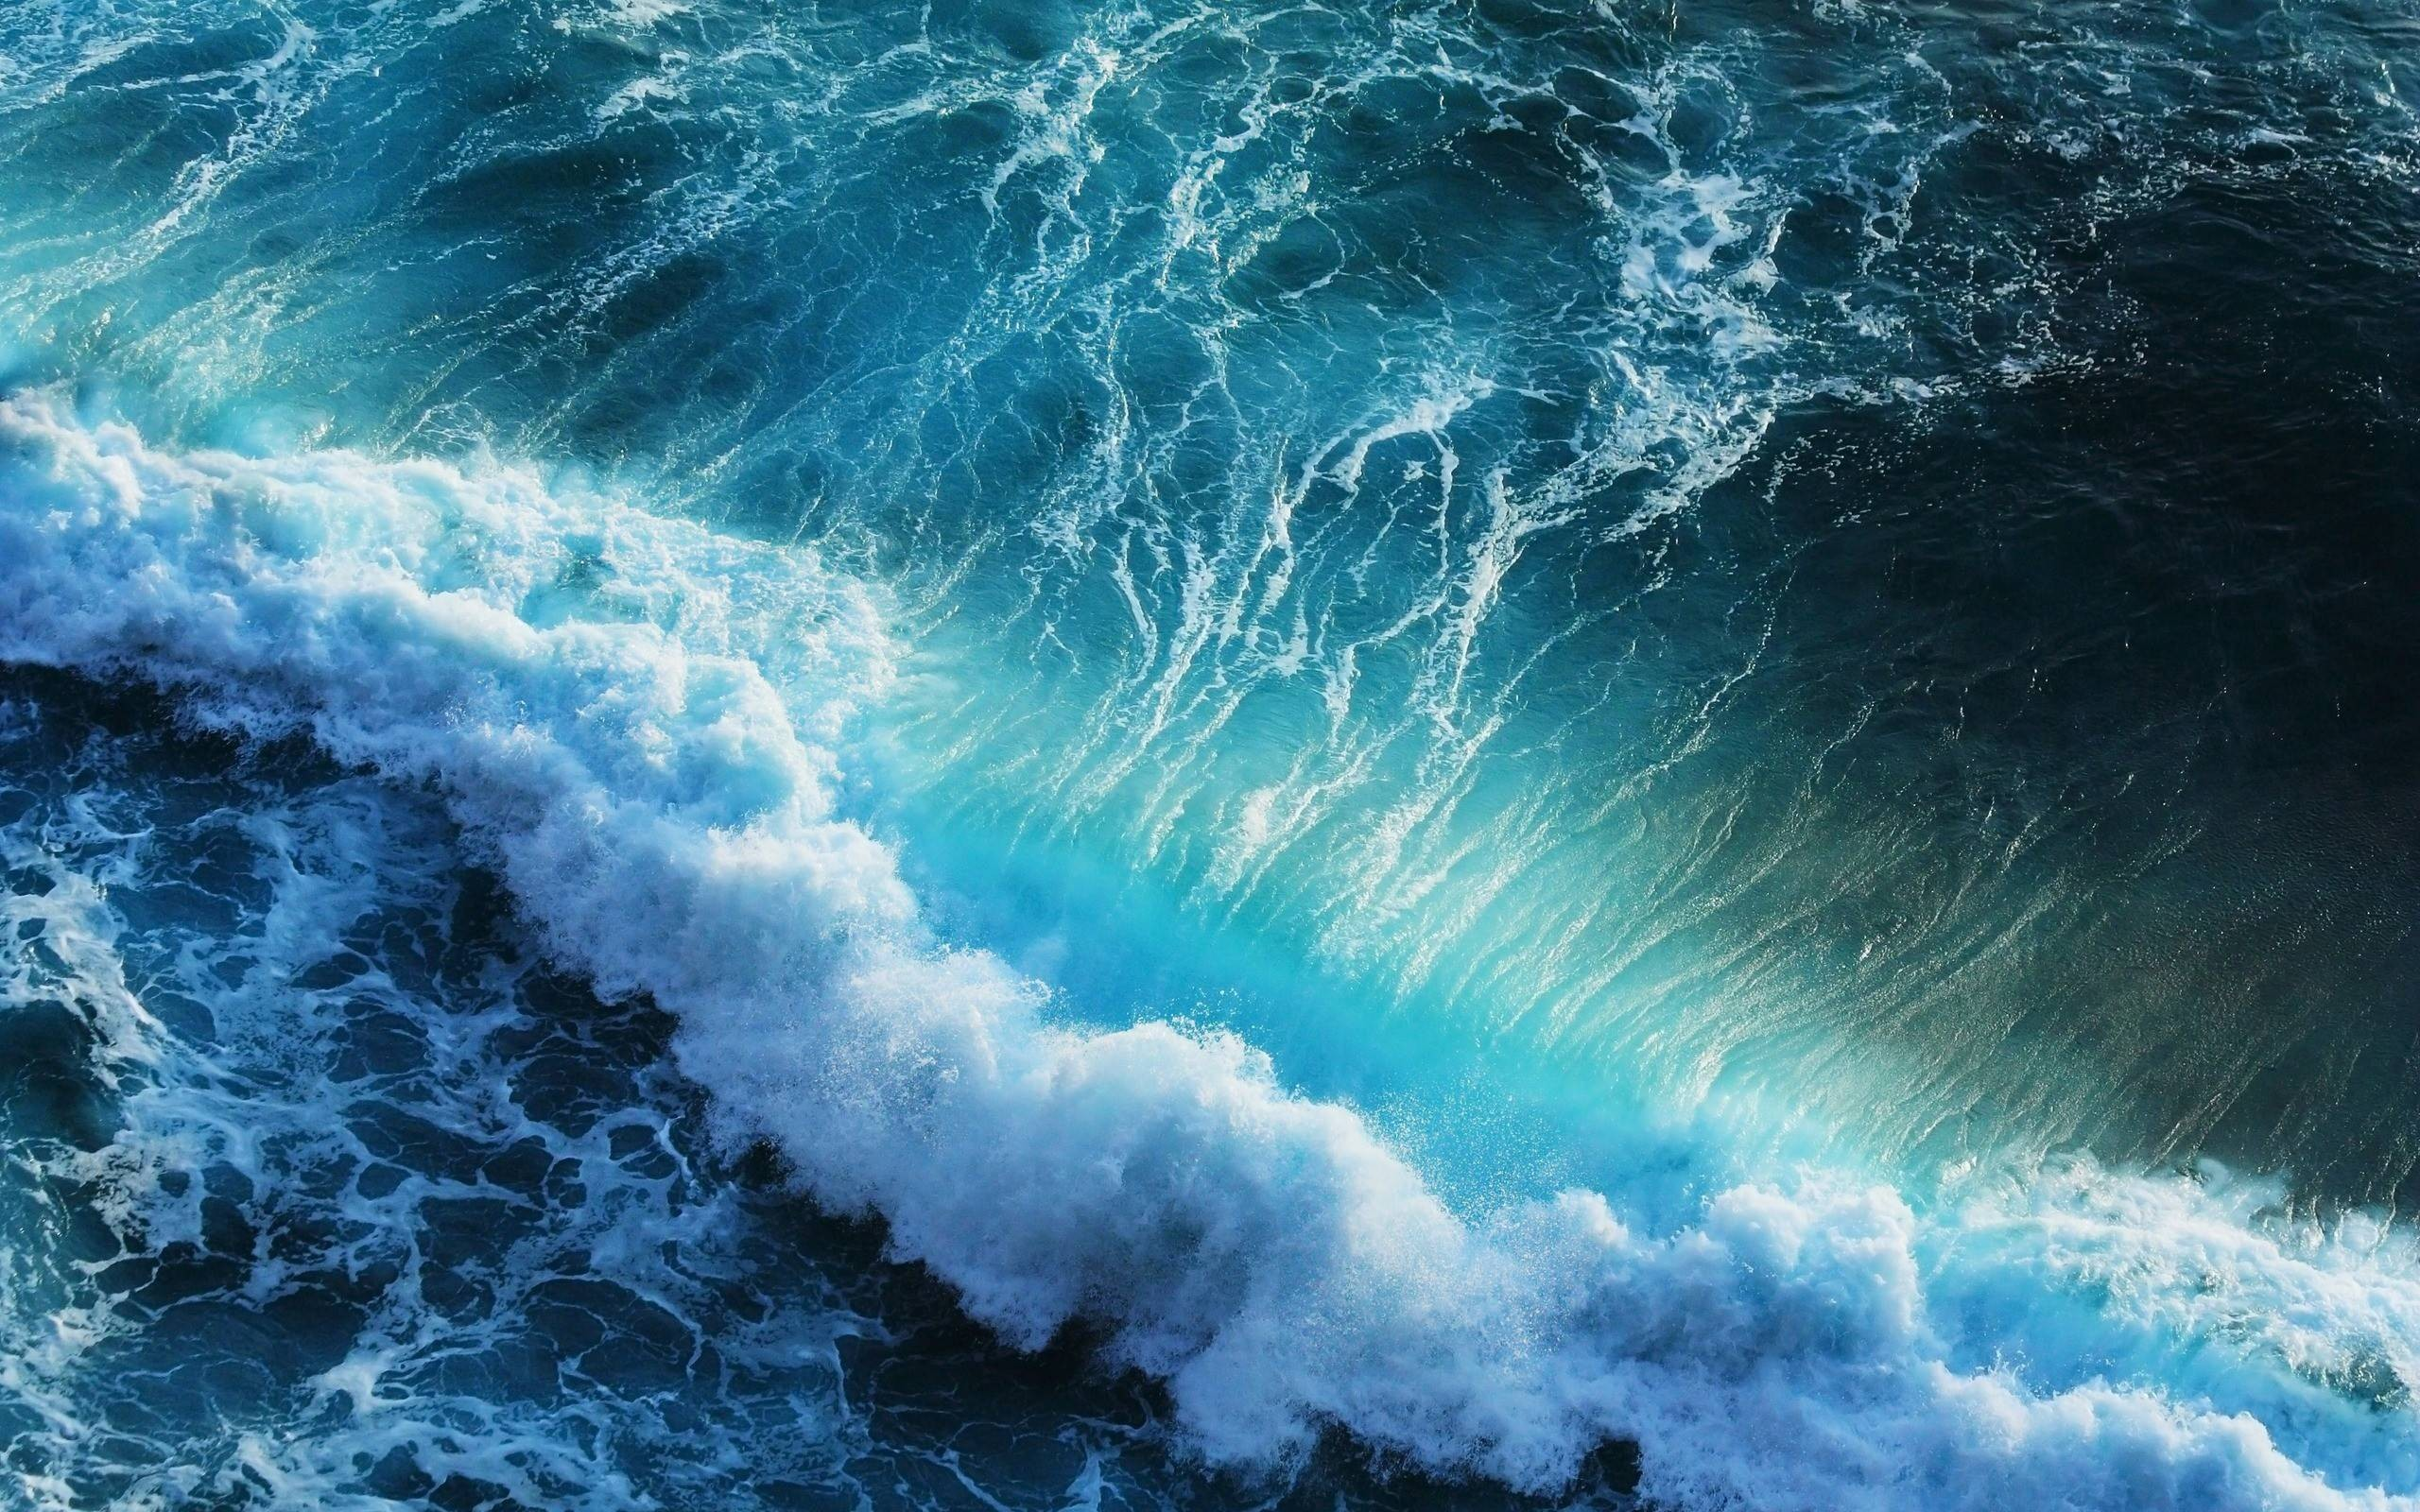 wave wallpaper ·① download free high resolution wallpapers for